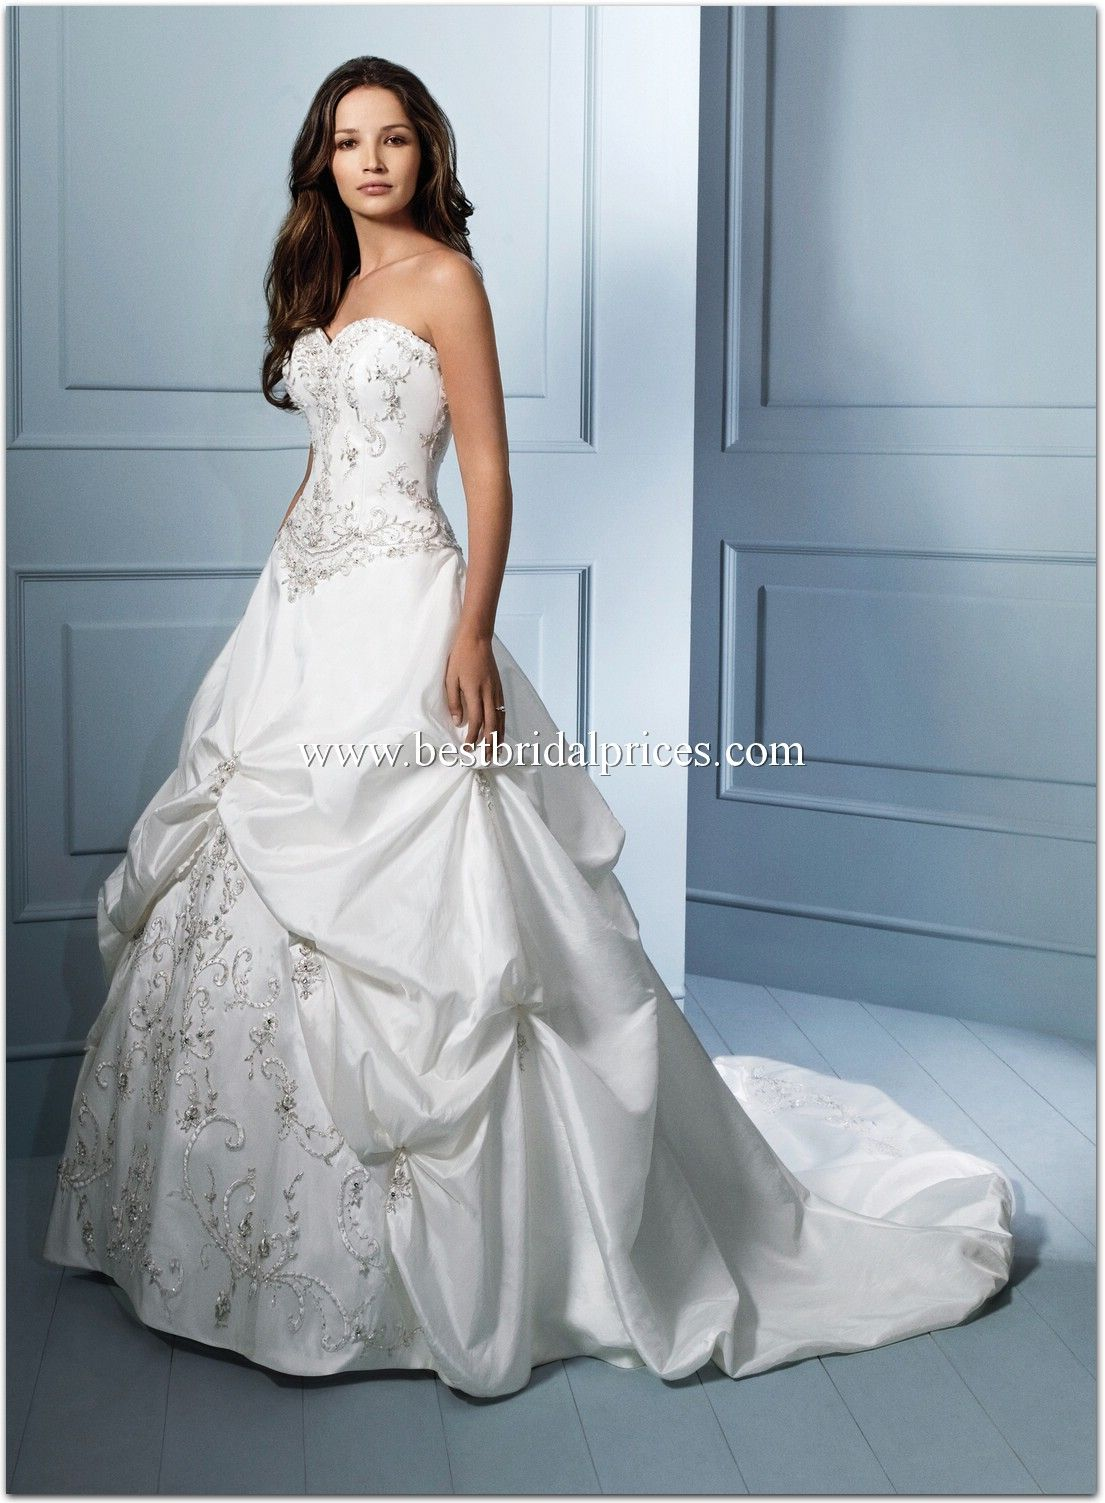 Alfredangelosapphire alfred angelo sapphire wedding dresses alfred angelo bridal style 758 from alfred angelo sapphire very similar to dream dress but whiter ombrellifo Images